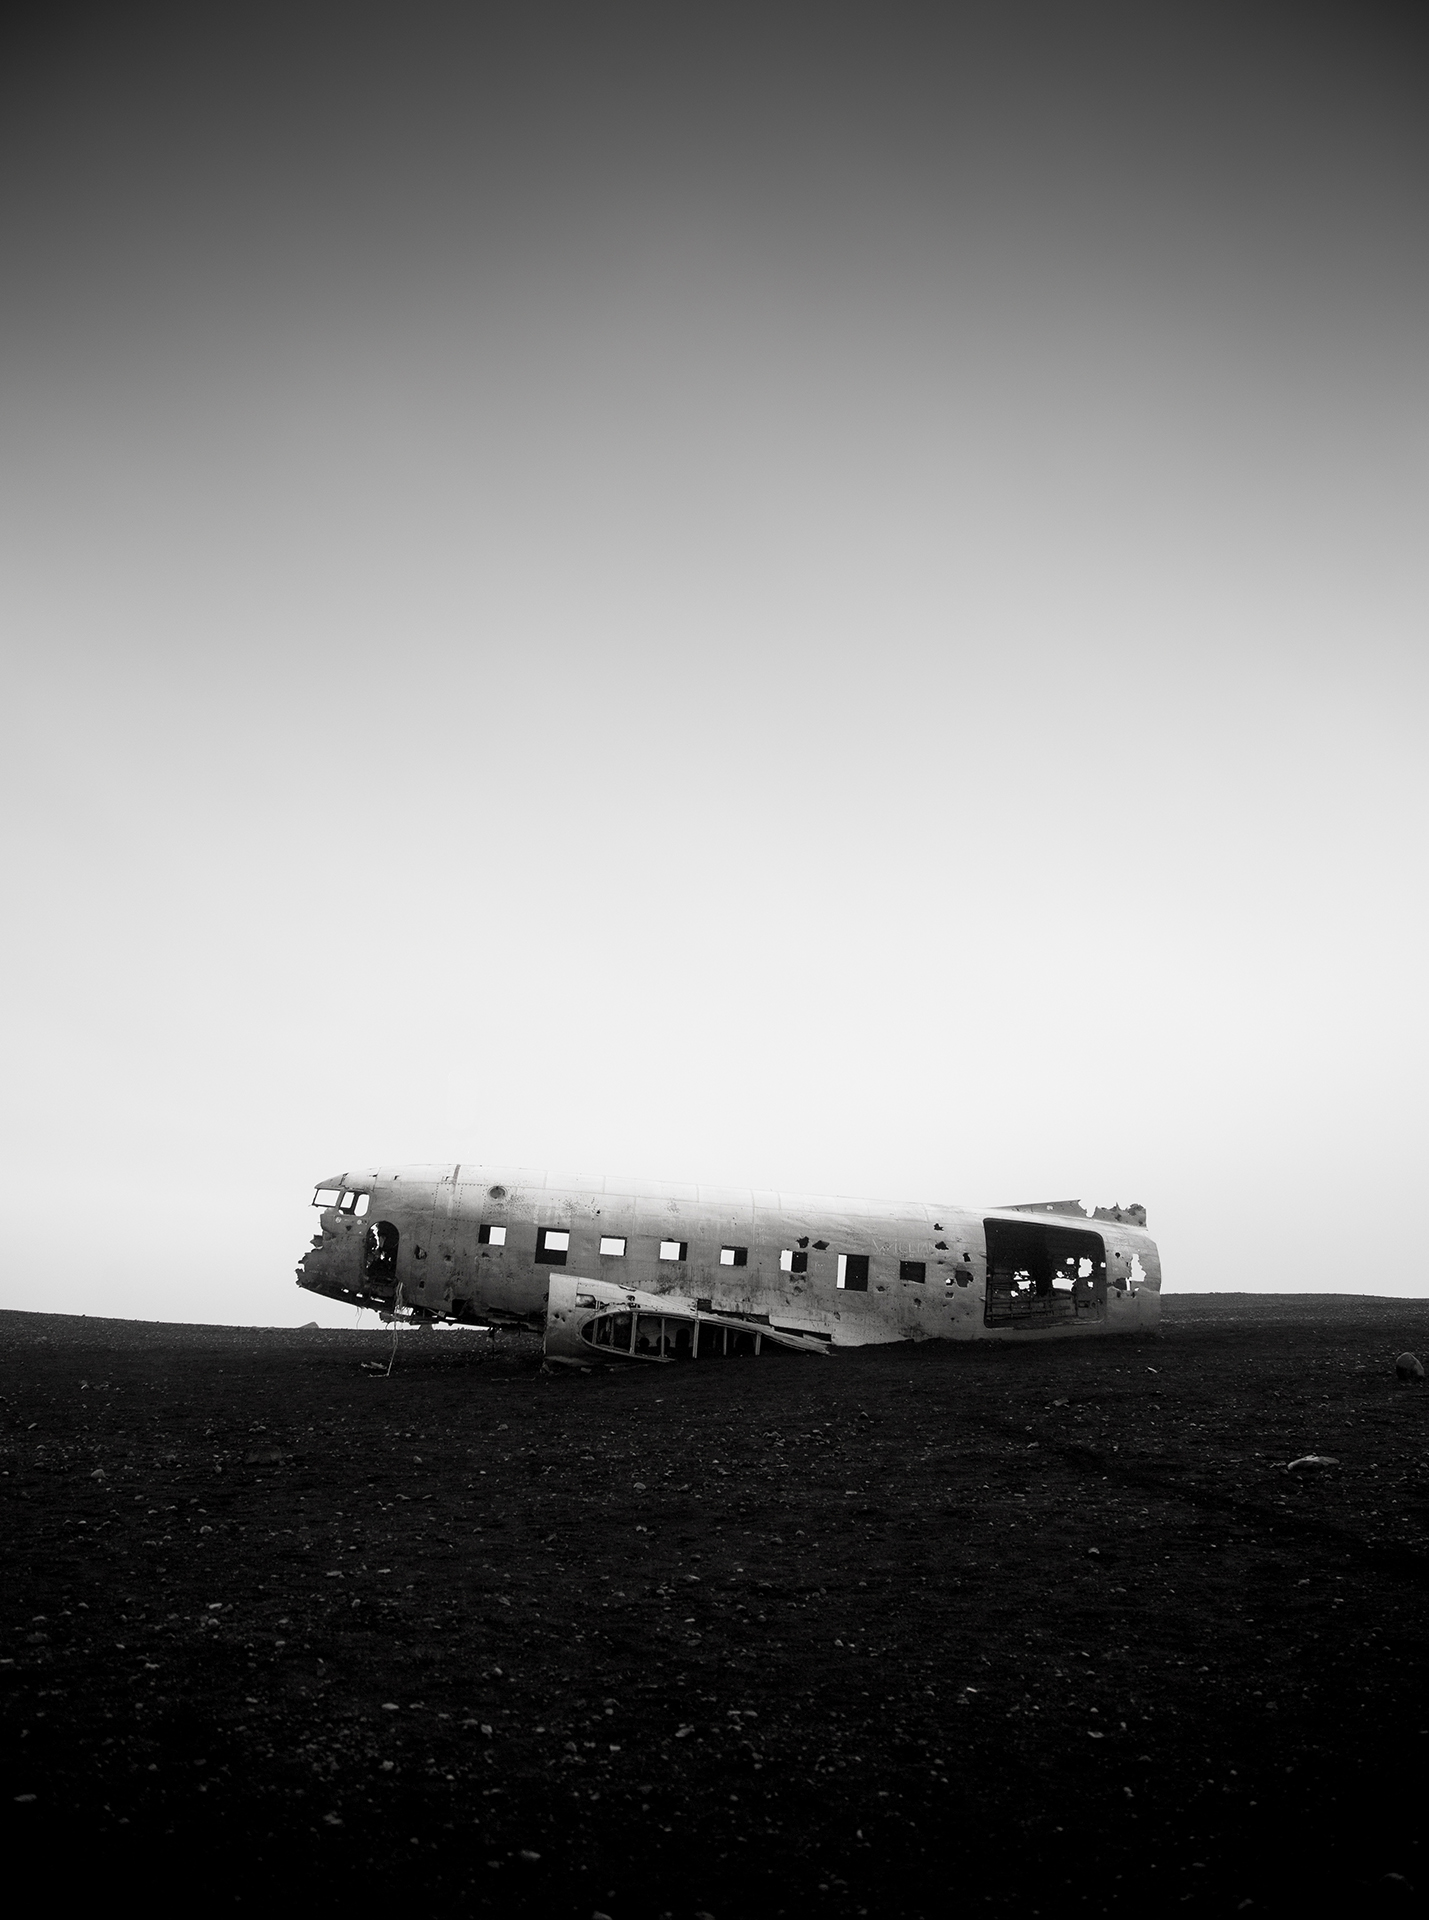 iceland plane wreck black and white